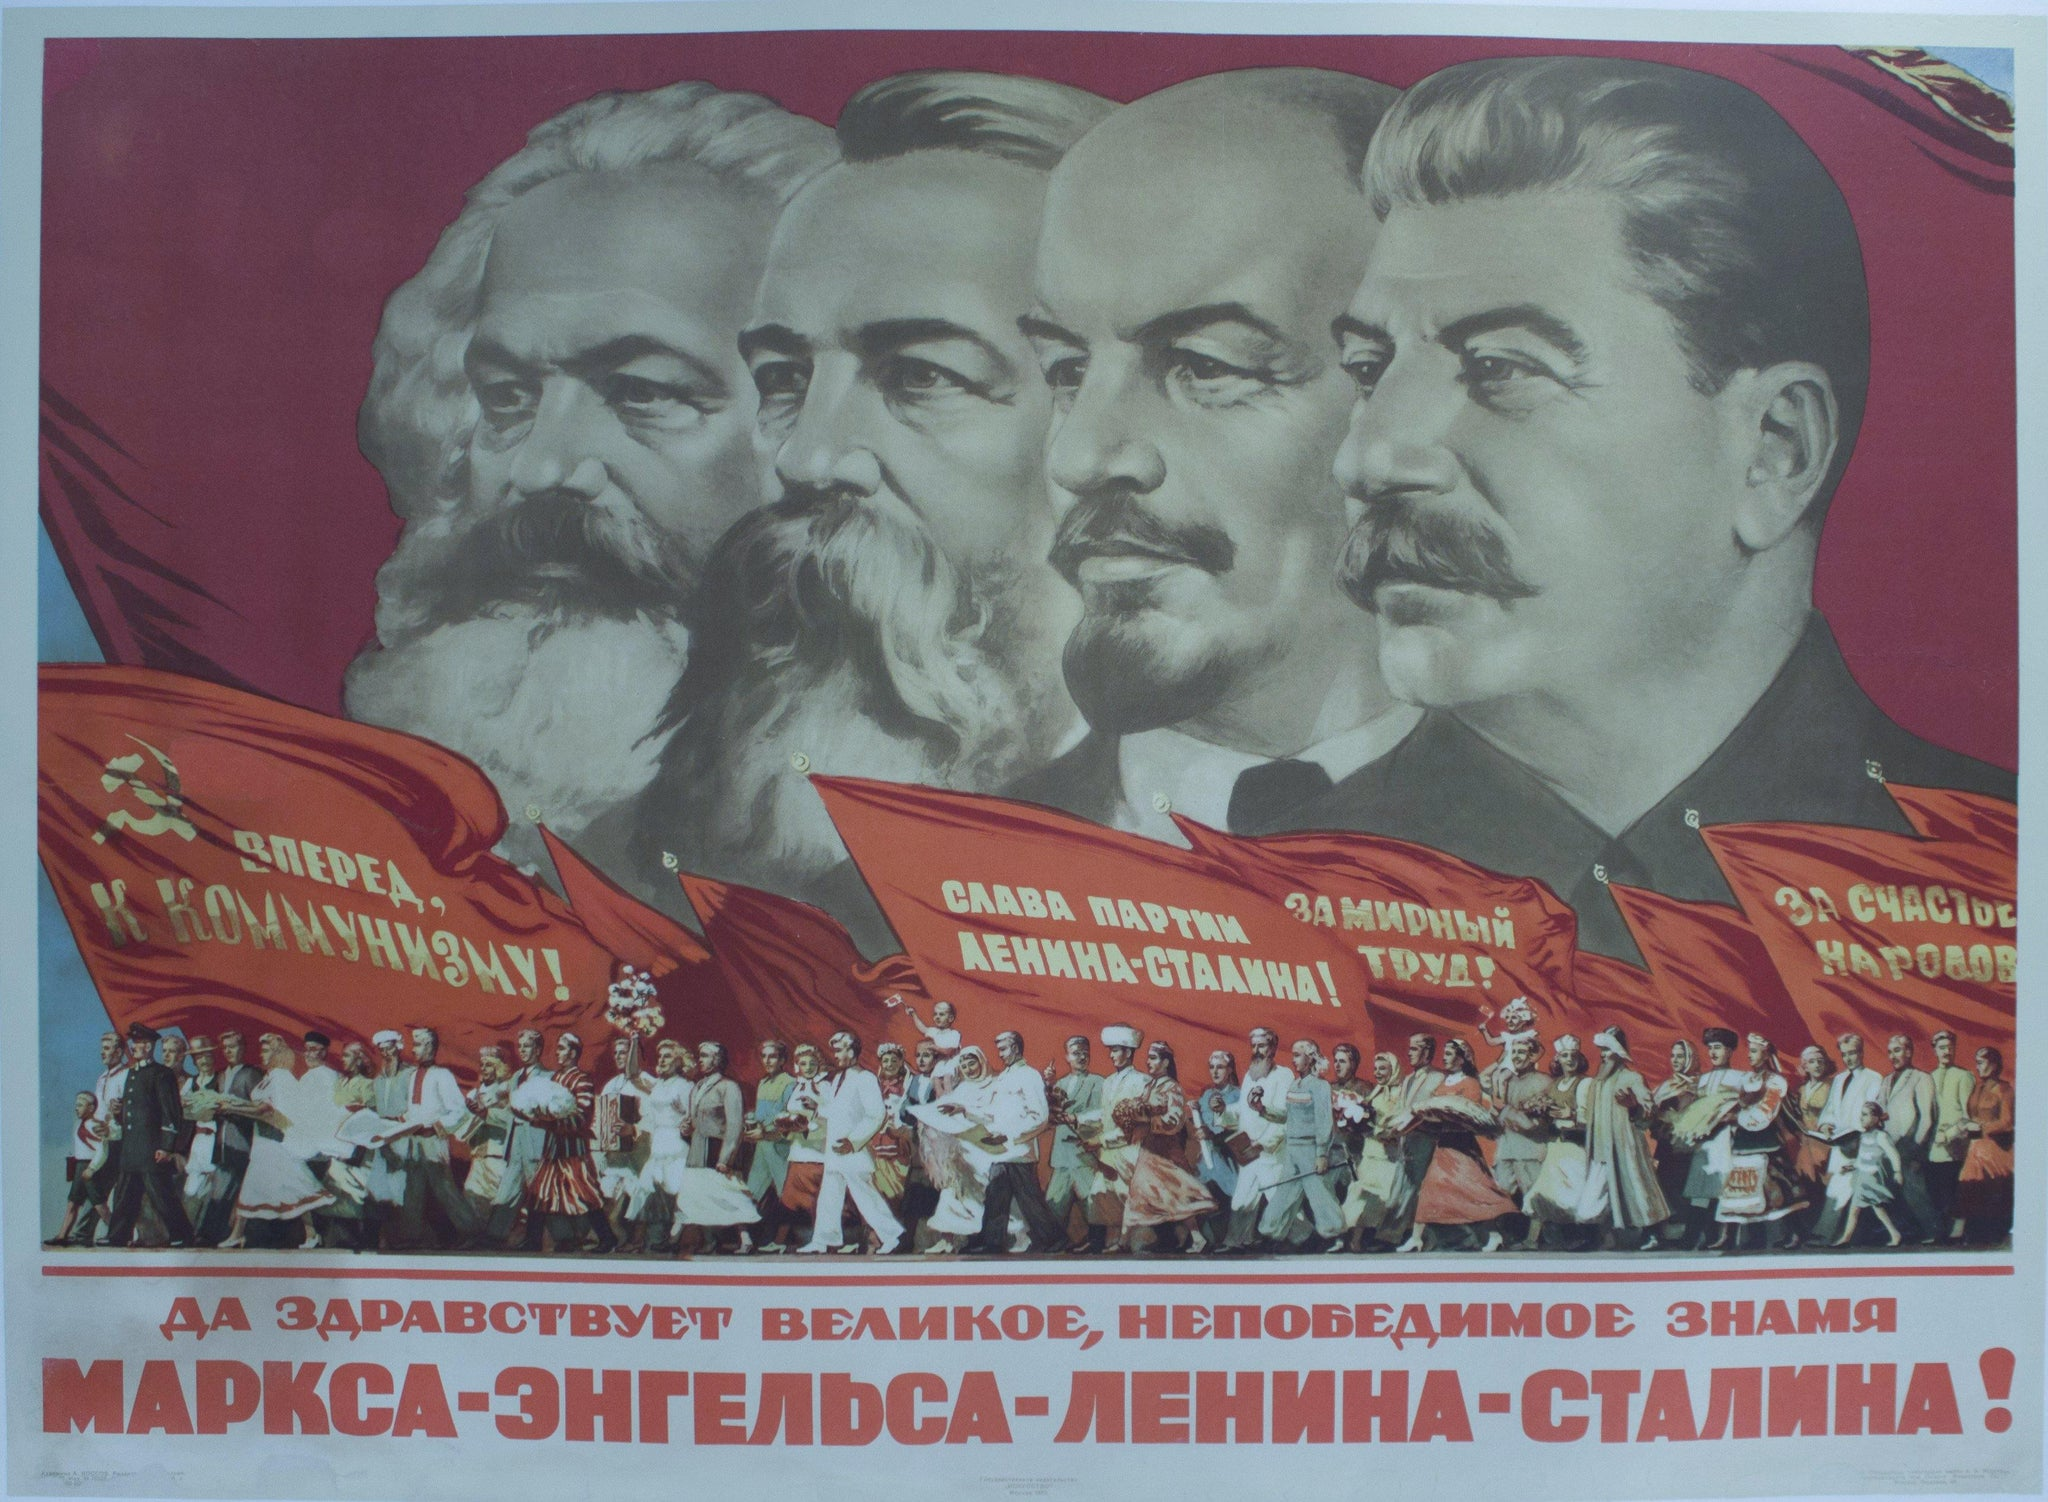 1953 Soviet Union - We Praise the Great Unbeatable Banner of Marx, Engels, Lenin, Stalin